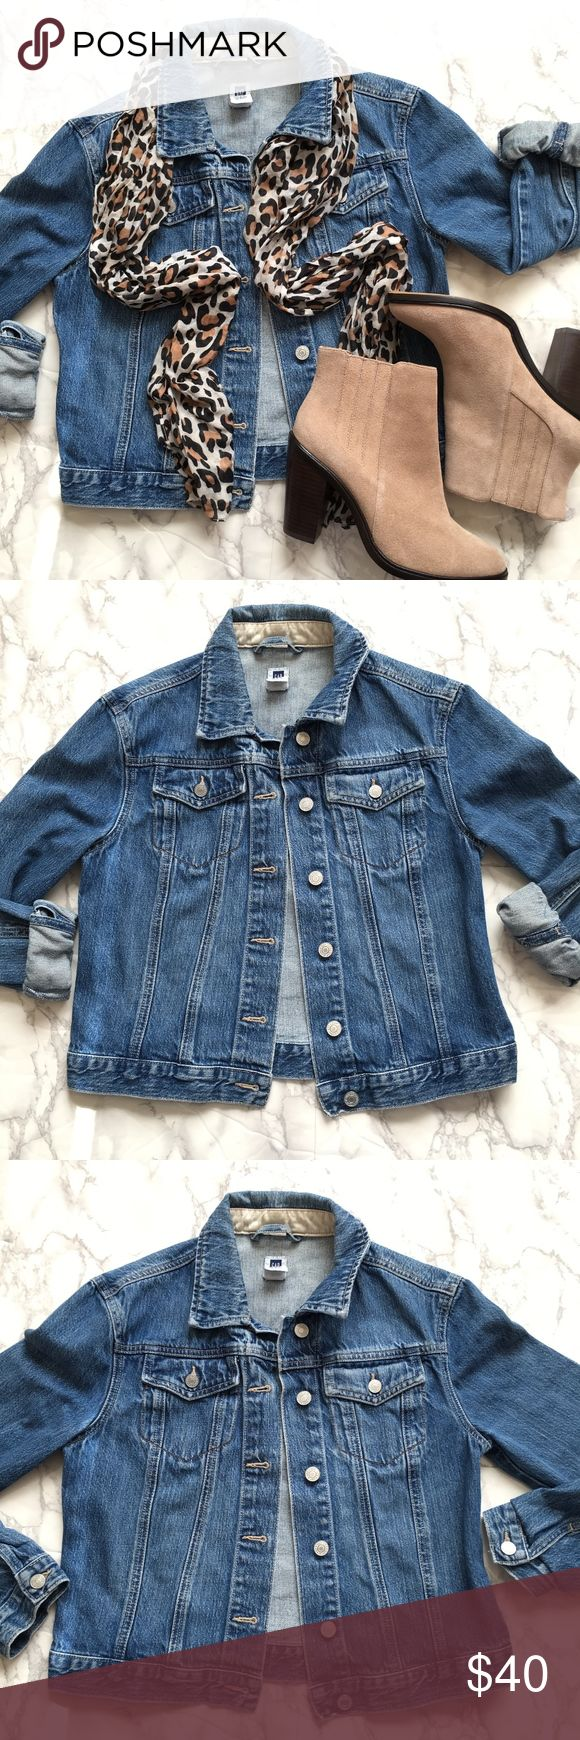 """GAP Factory Outlet Denim Blue Jean Jacket GAP Factory Outlet Denim Blue Jean Jacket   Size Small  Great condition, perfect for Fall  Measurements taken while laying flat: 18"""" armpit to armpit 20"""" length 18"""" waist GAP Jackets & Coats Jean Jackets"""